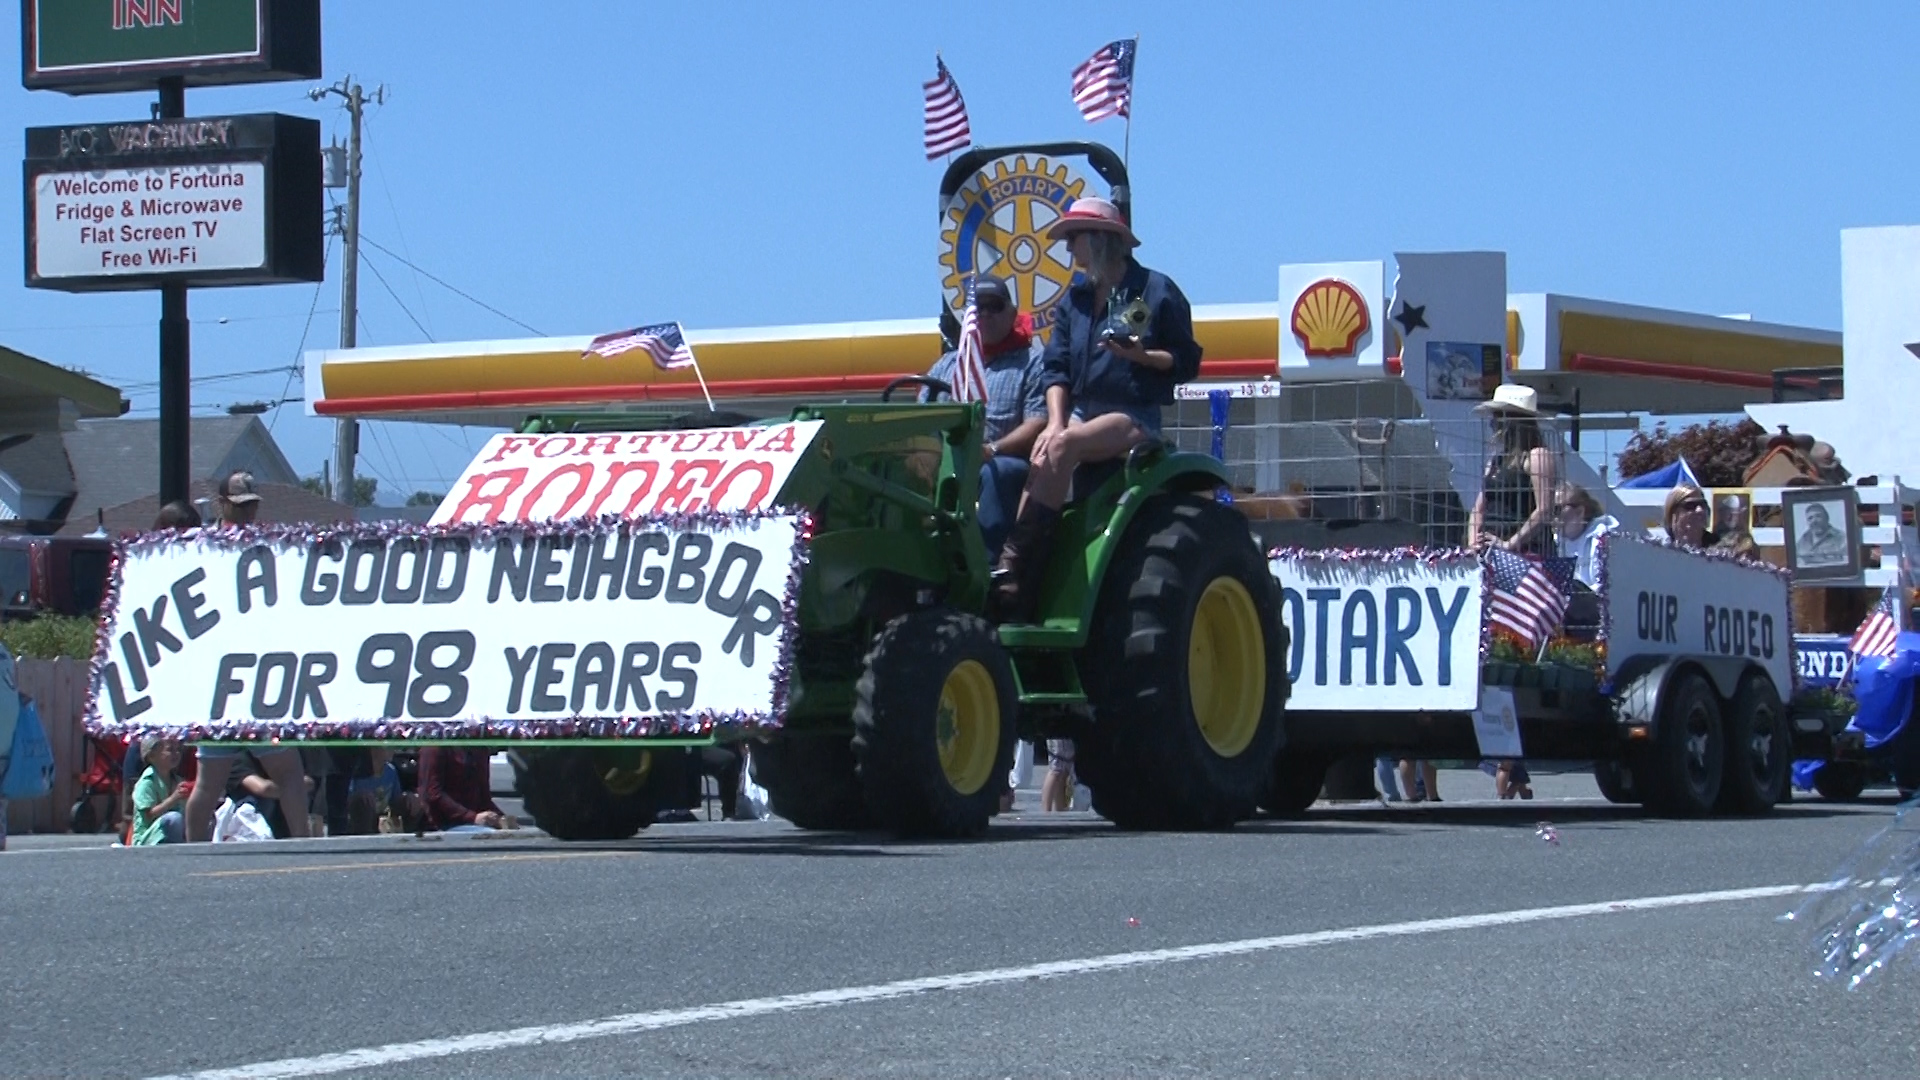 Fortuna Rodeo Celebrates 98th Year With Main Street Parade